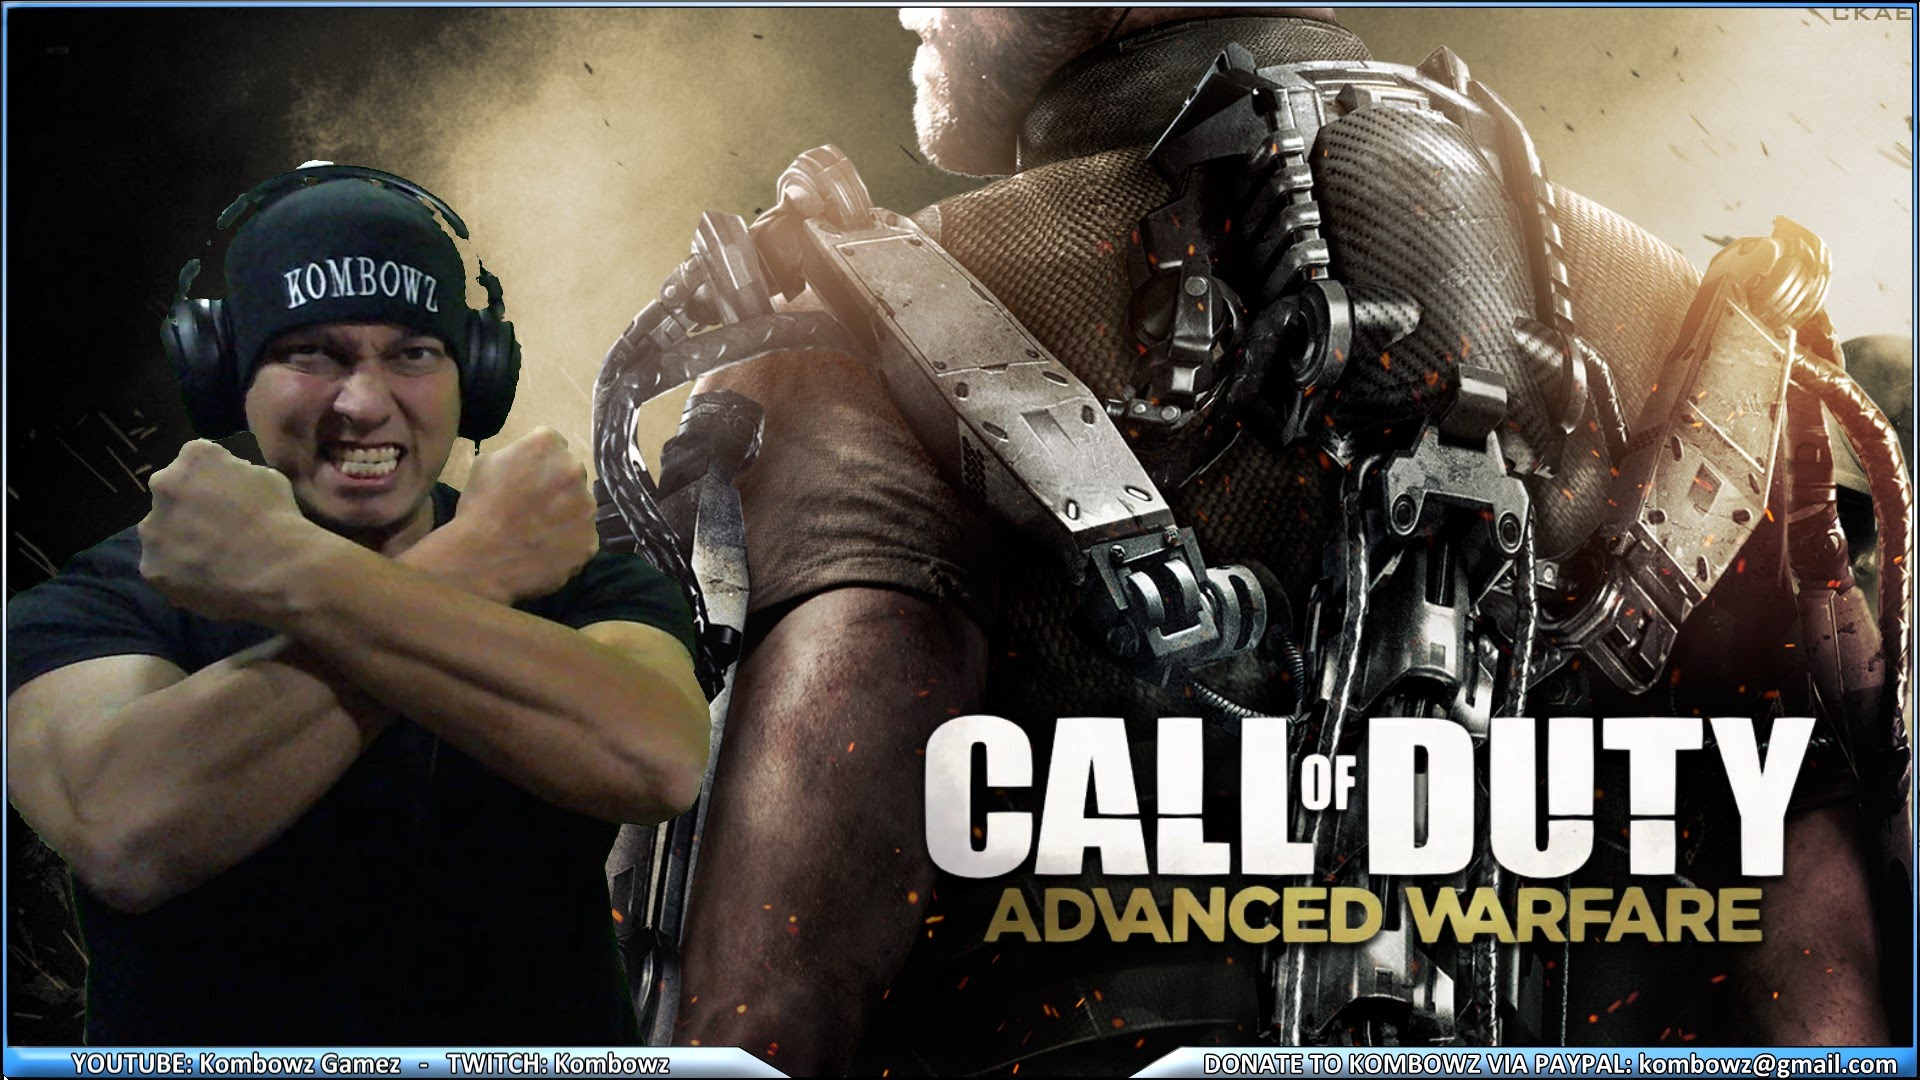 Call of Duty Advanced Warfare COD AW PC – Run and Gun for Fun